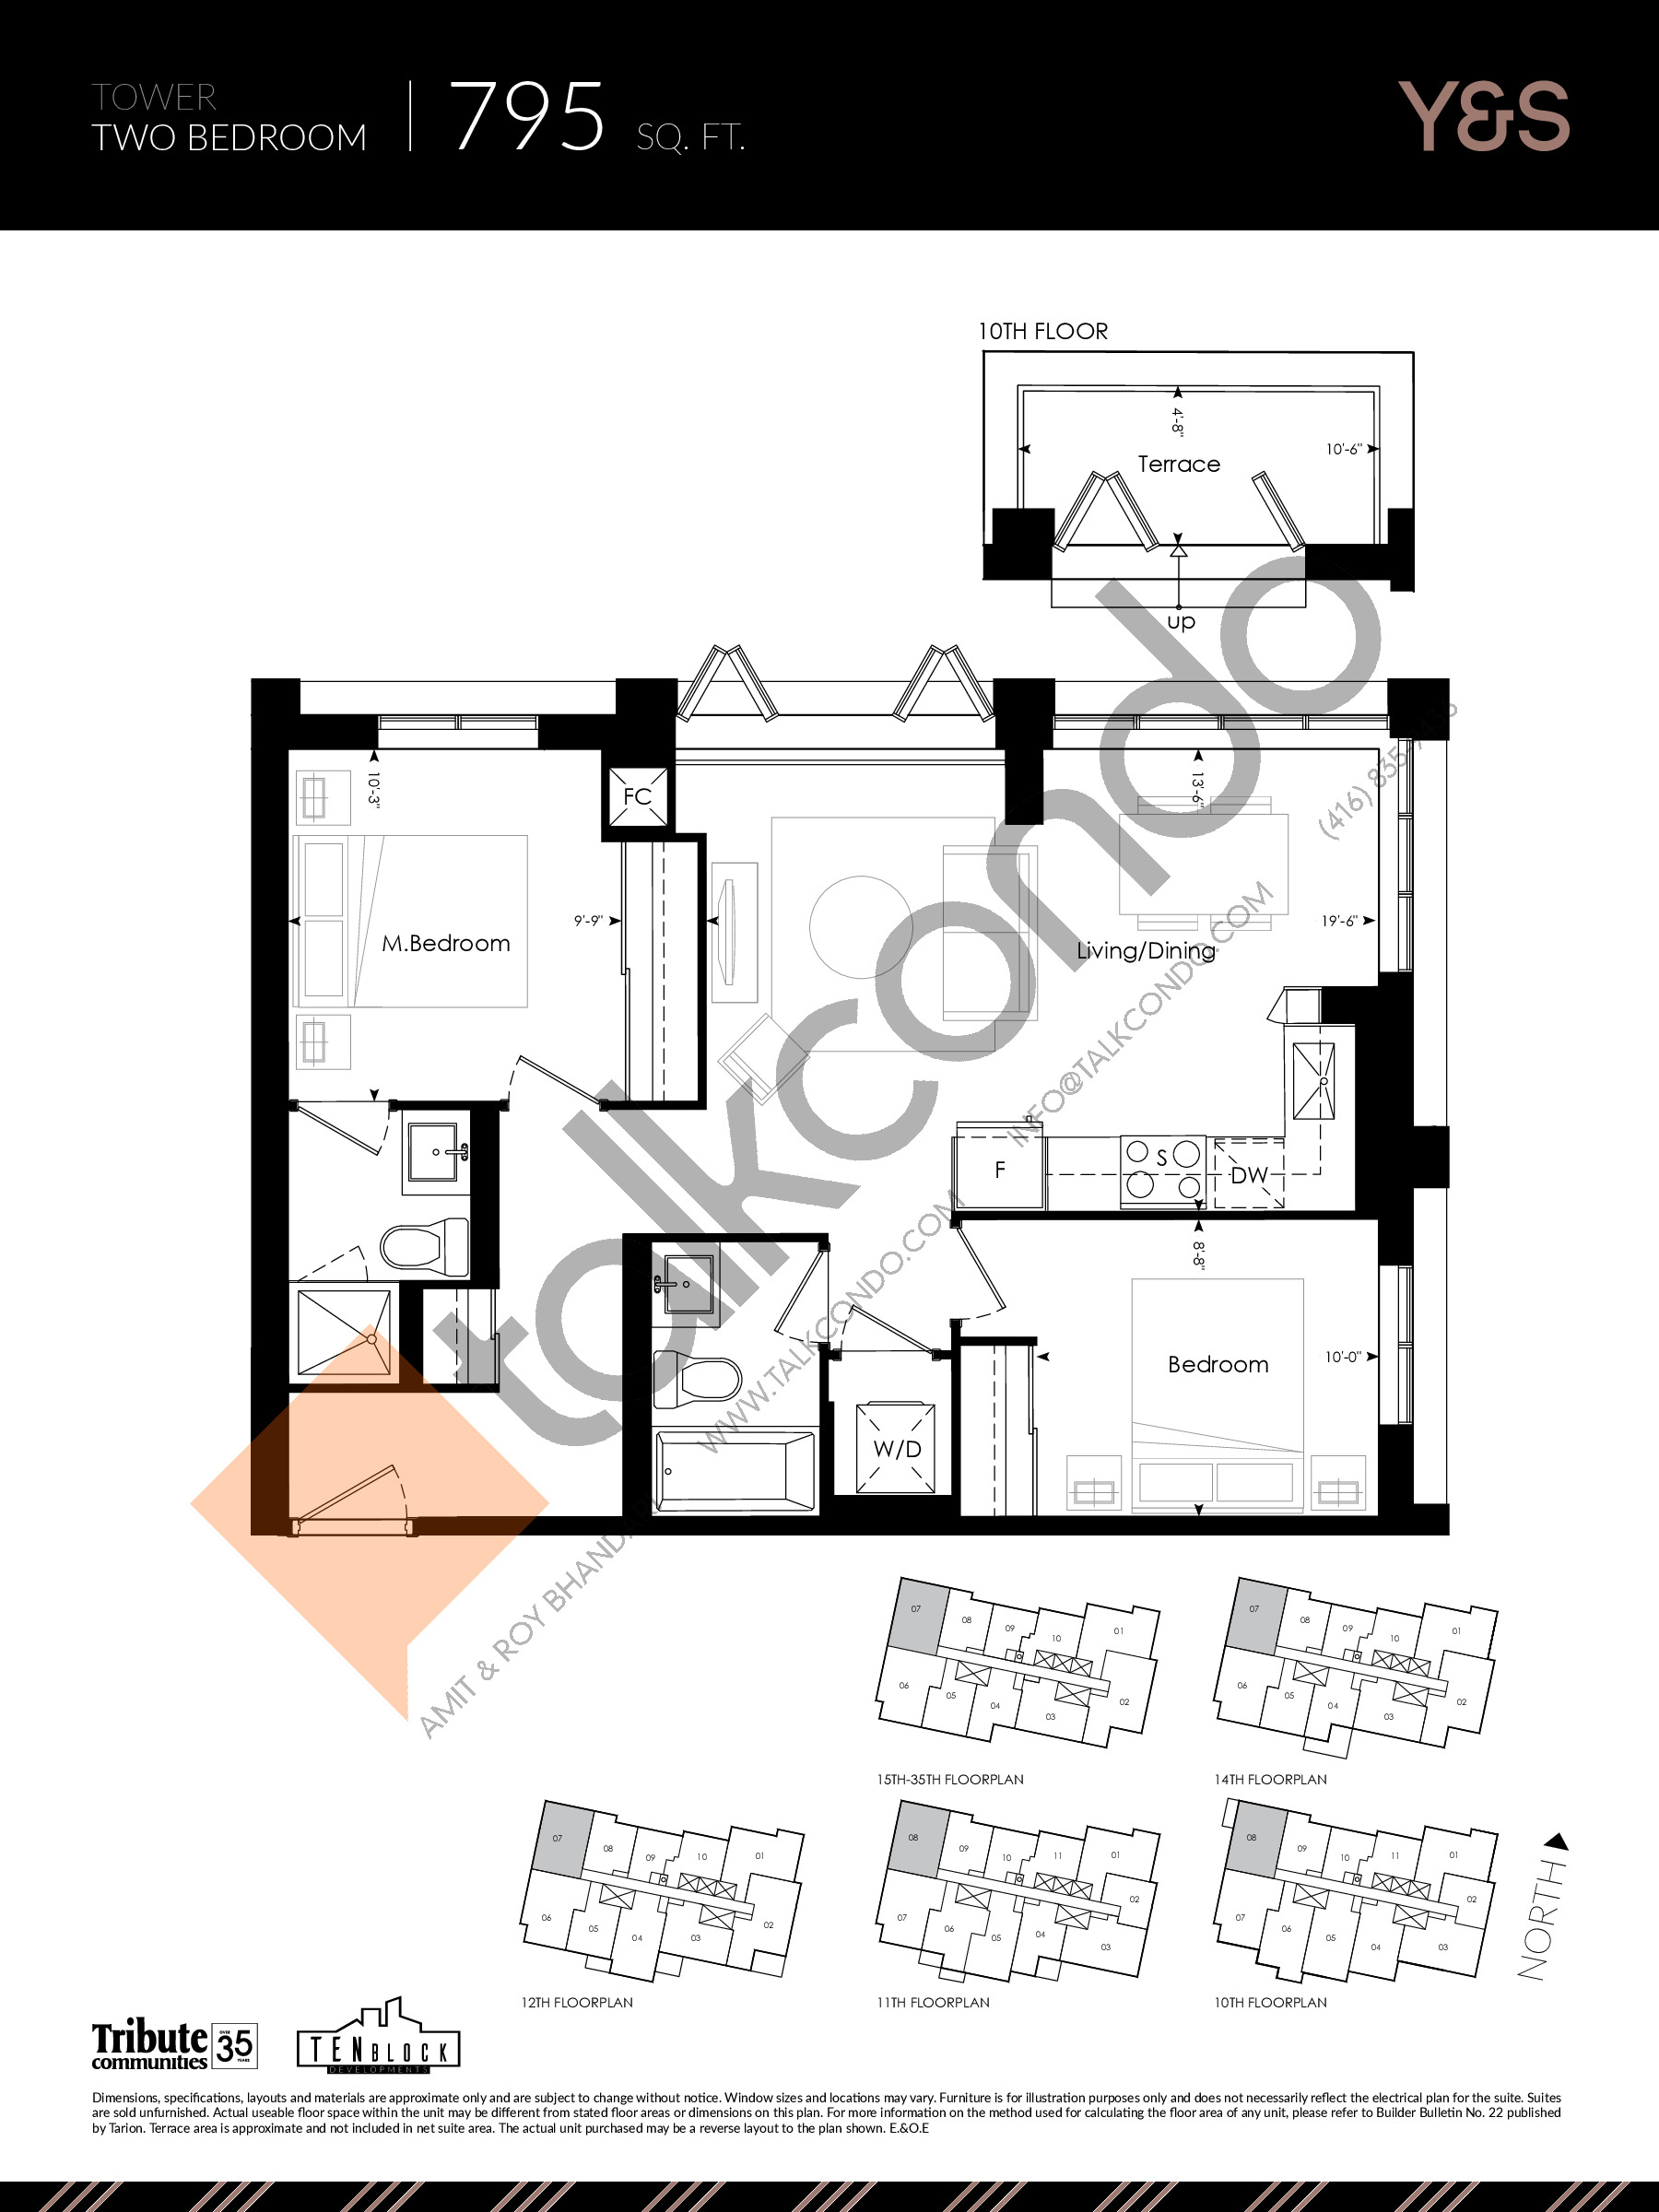 795 sq. ft. Floor Plan at Y&S Condos - 795 sq.ft